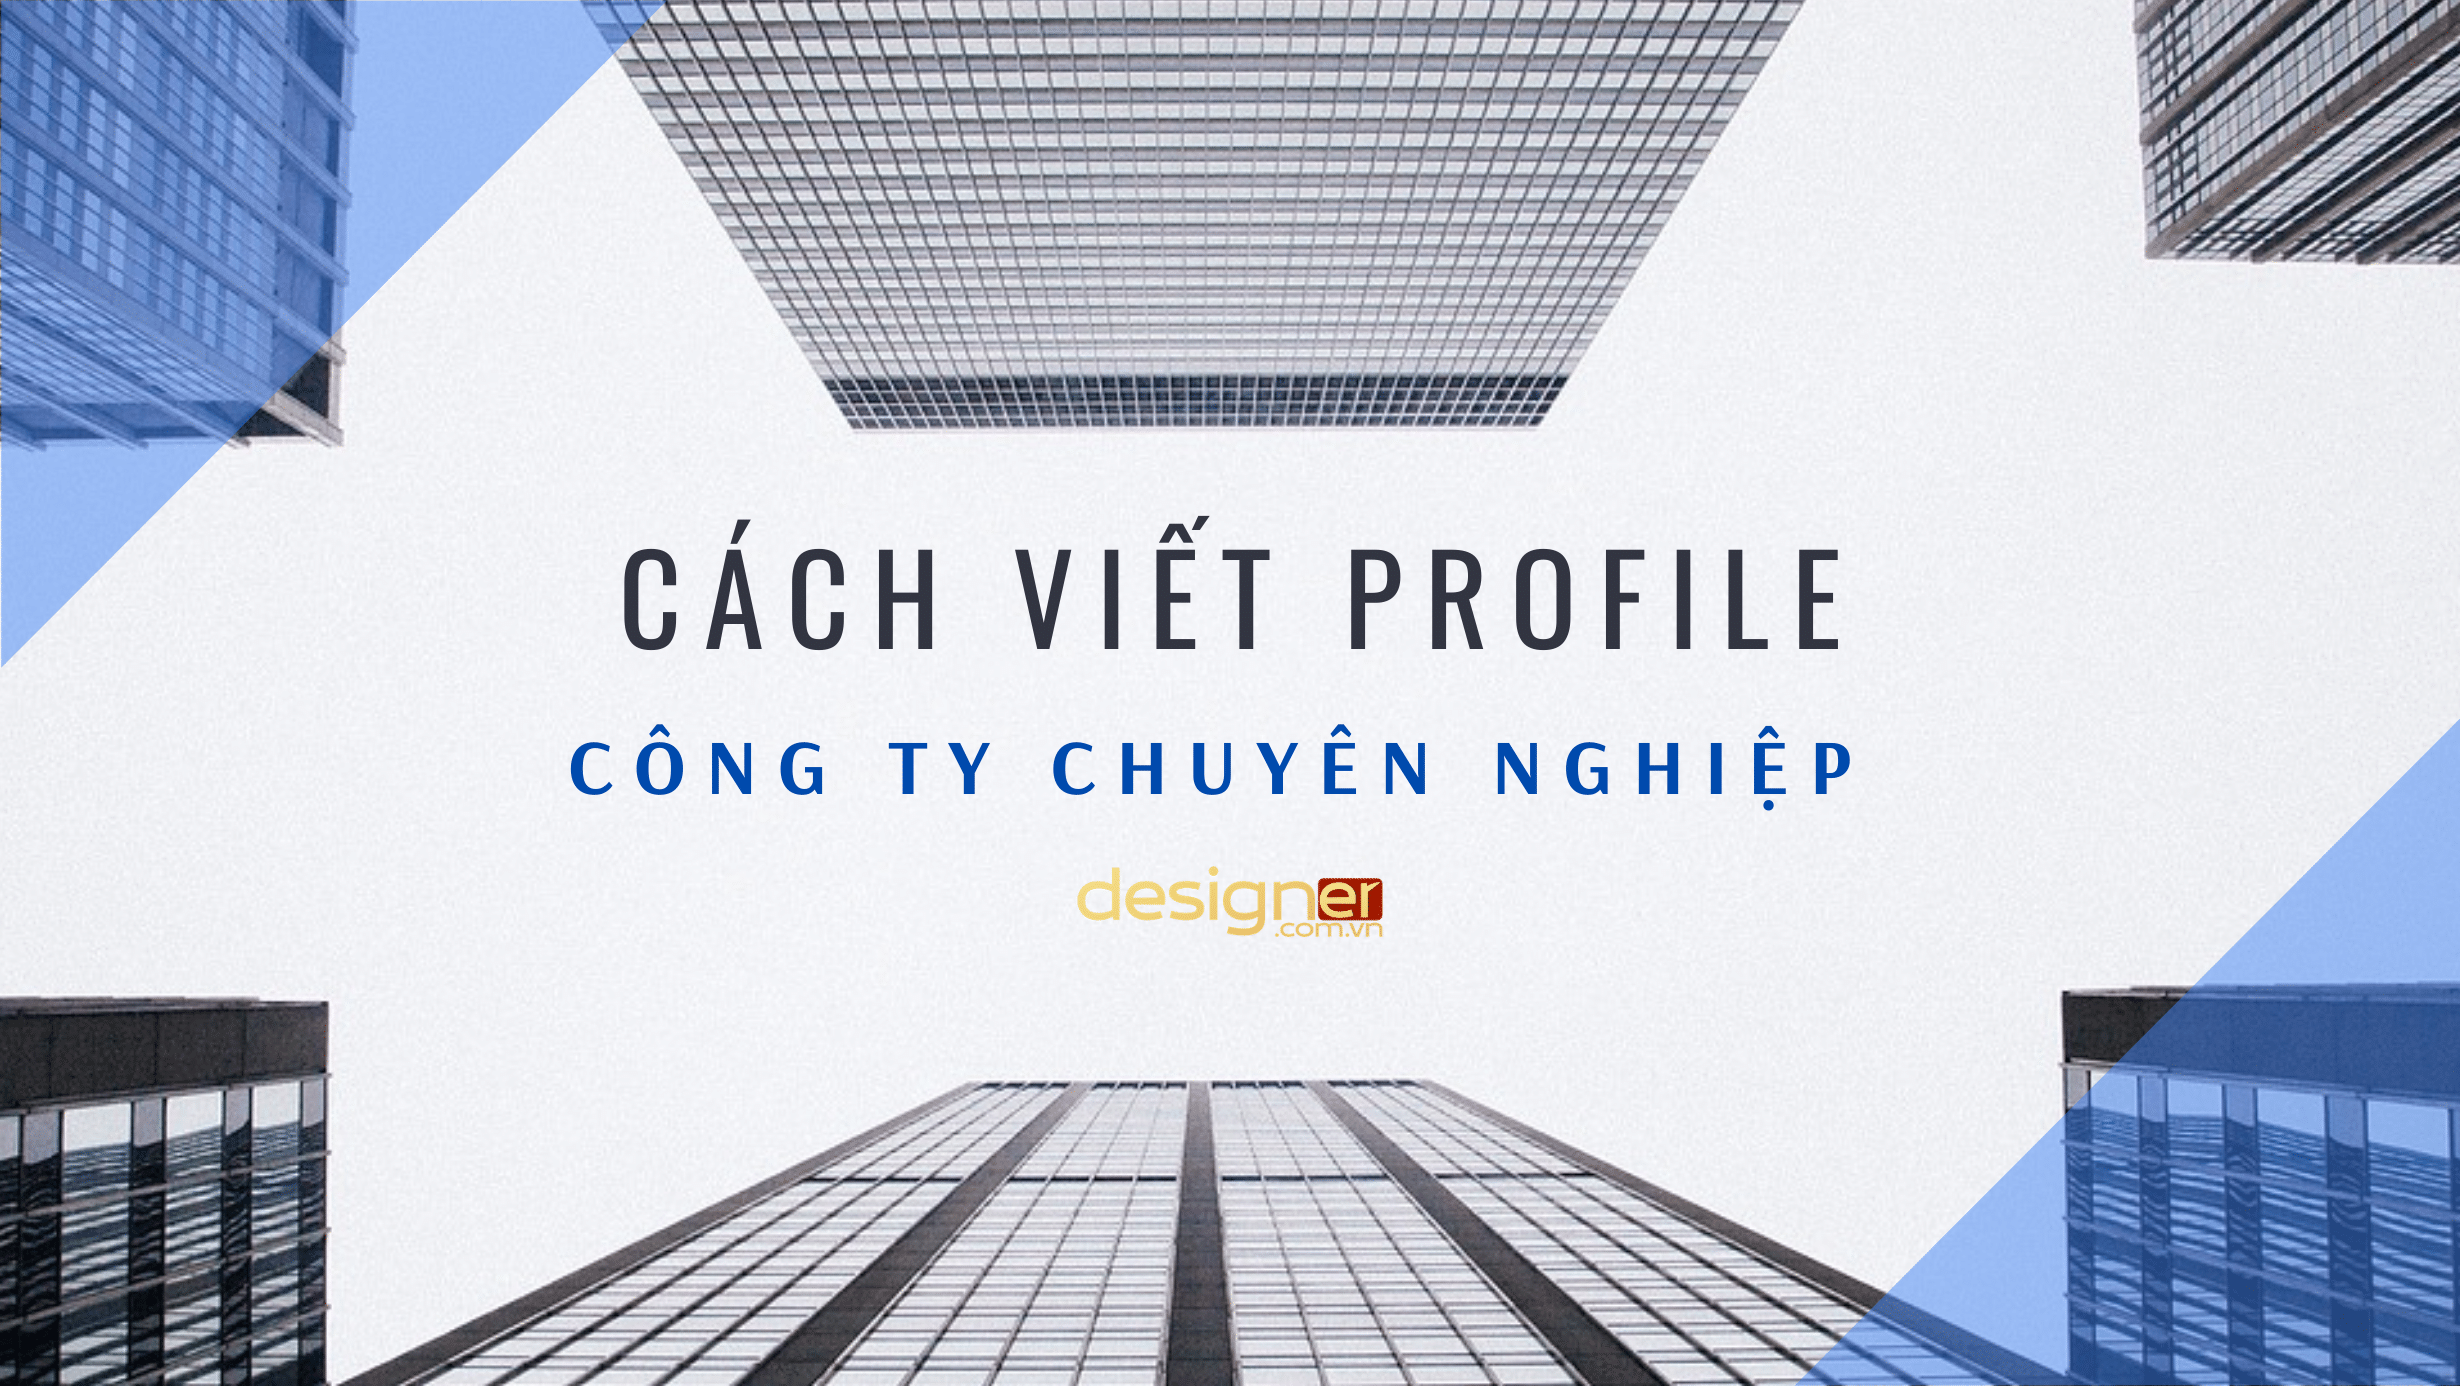 cach viet profile cong ty chuyen nghiep